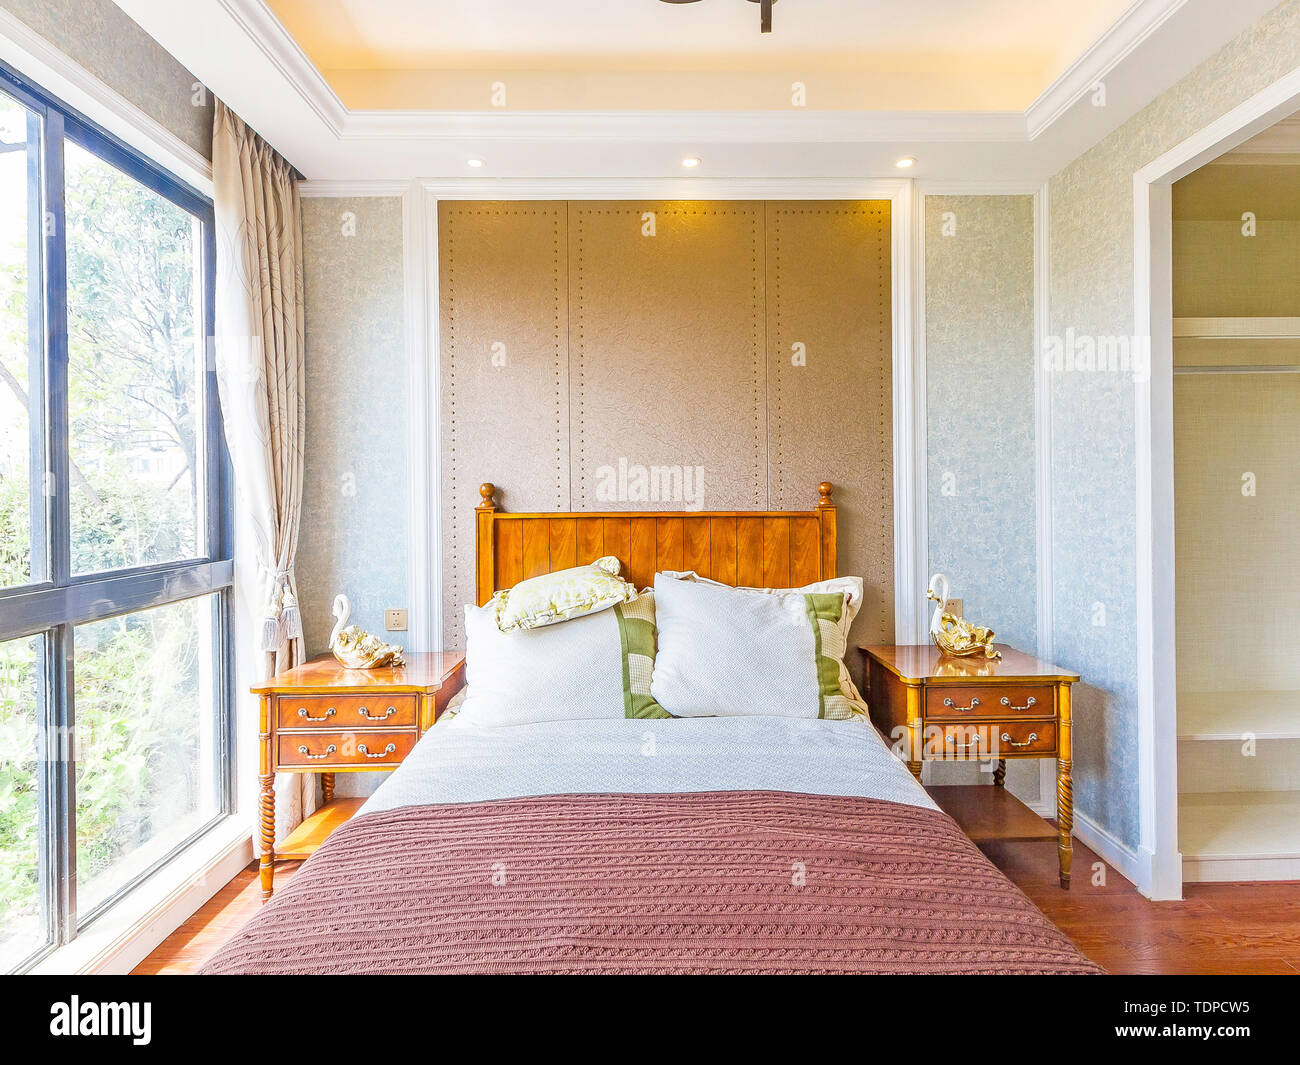 Bedroom Sleep Comfortable And Comfortable Rest Environment Different Styles Of Decoration Effects Meet Your Visual Feast Stock Photo Alamy